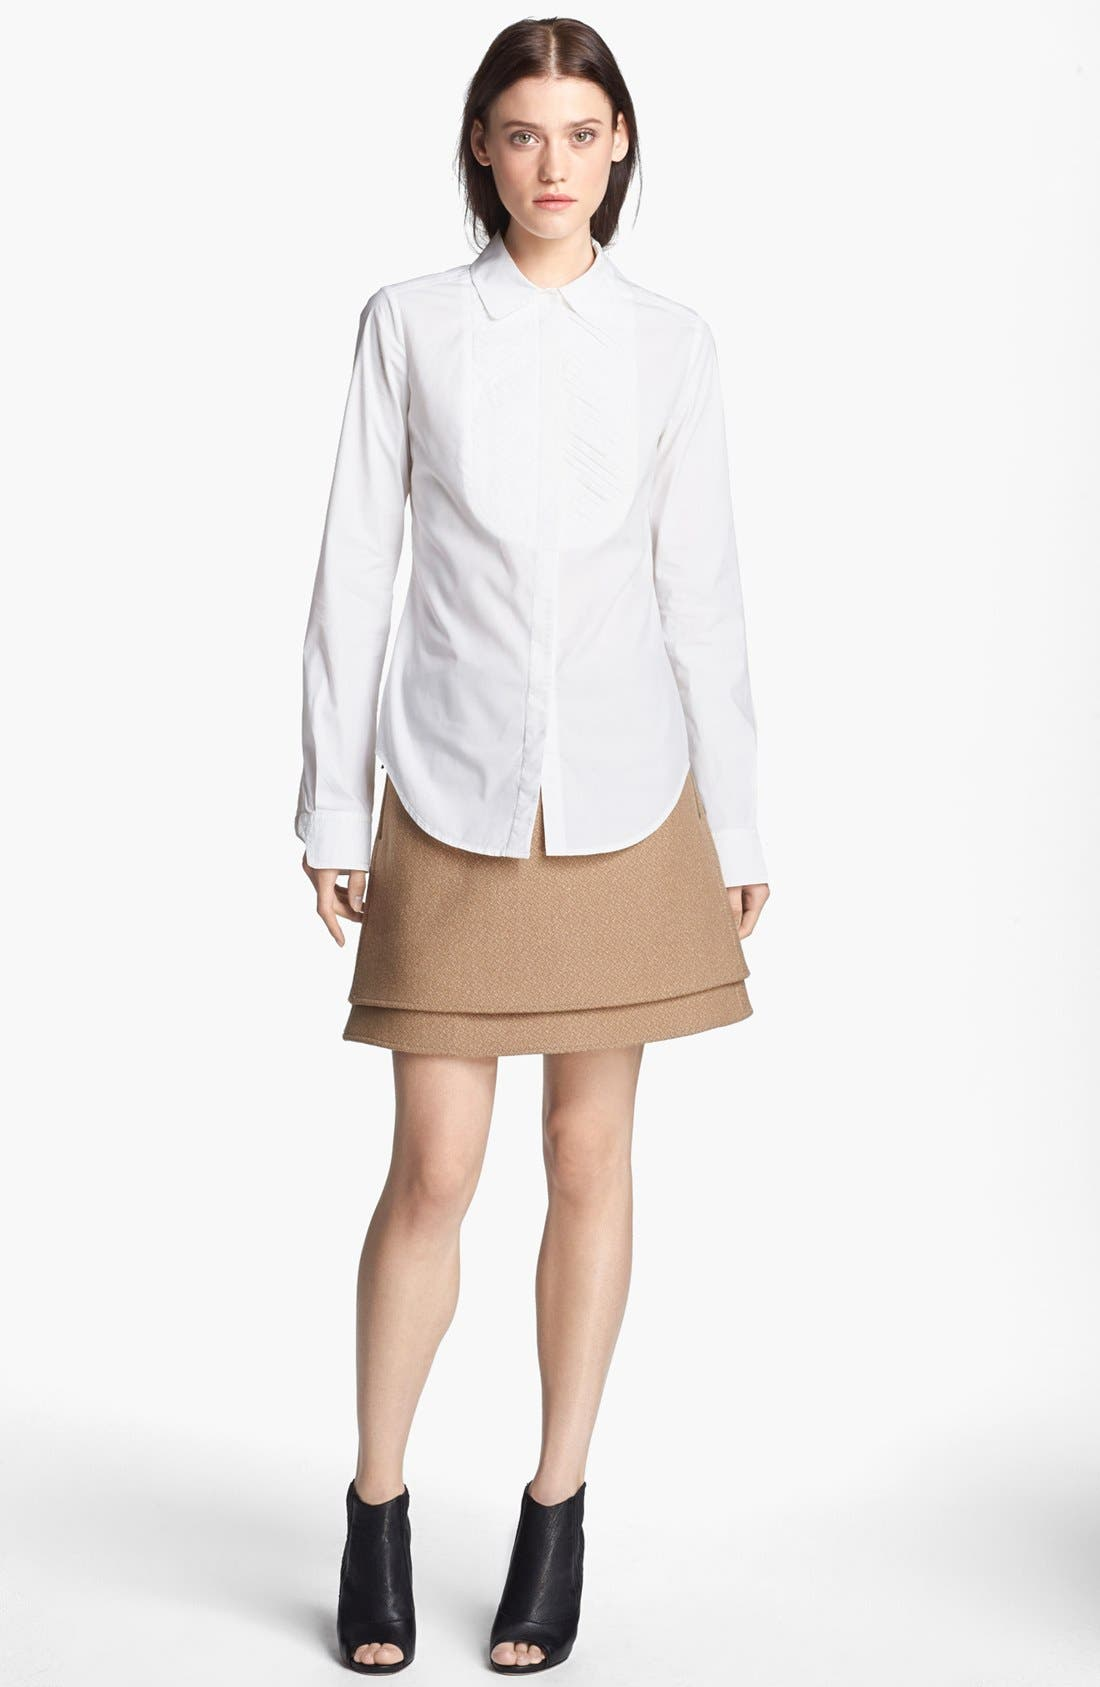 Main Image - Rachel Zoe 'Beatrice' Pleated Blouse